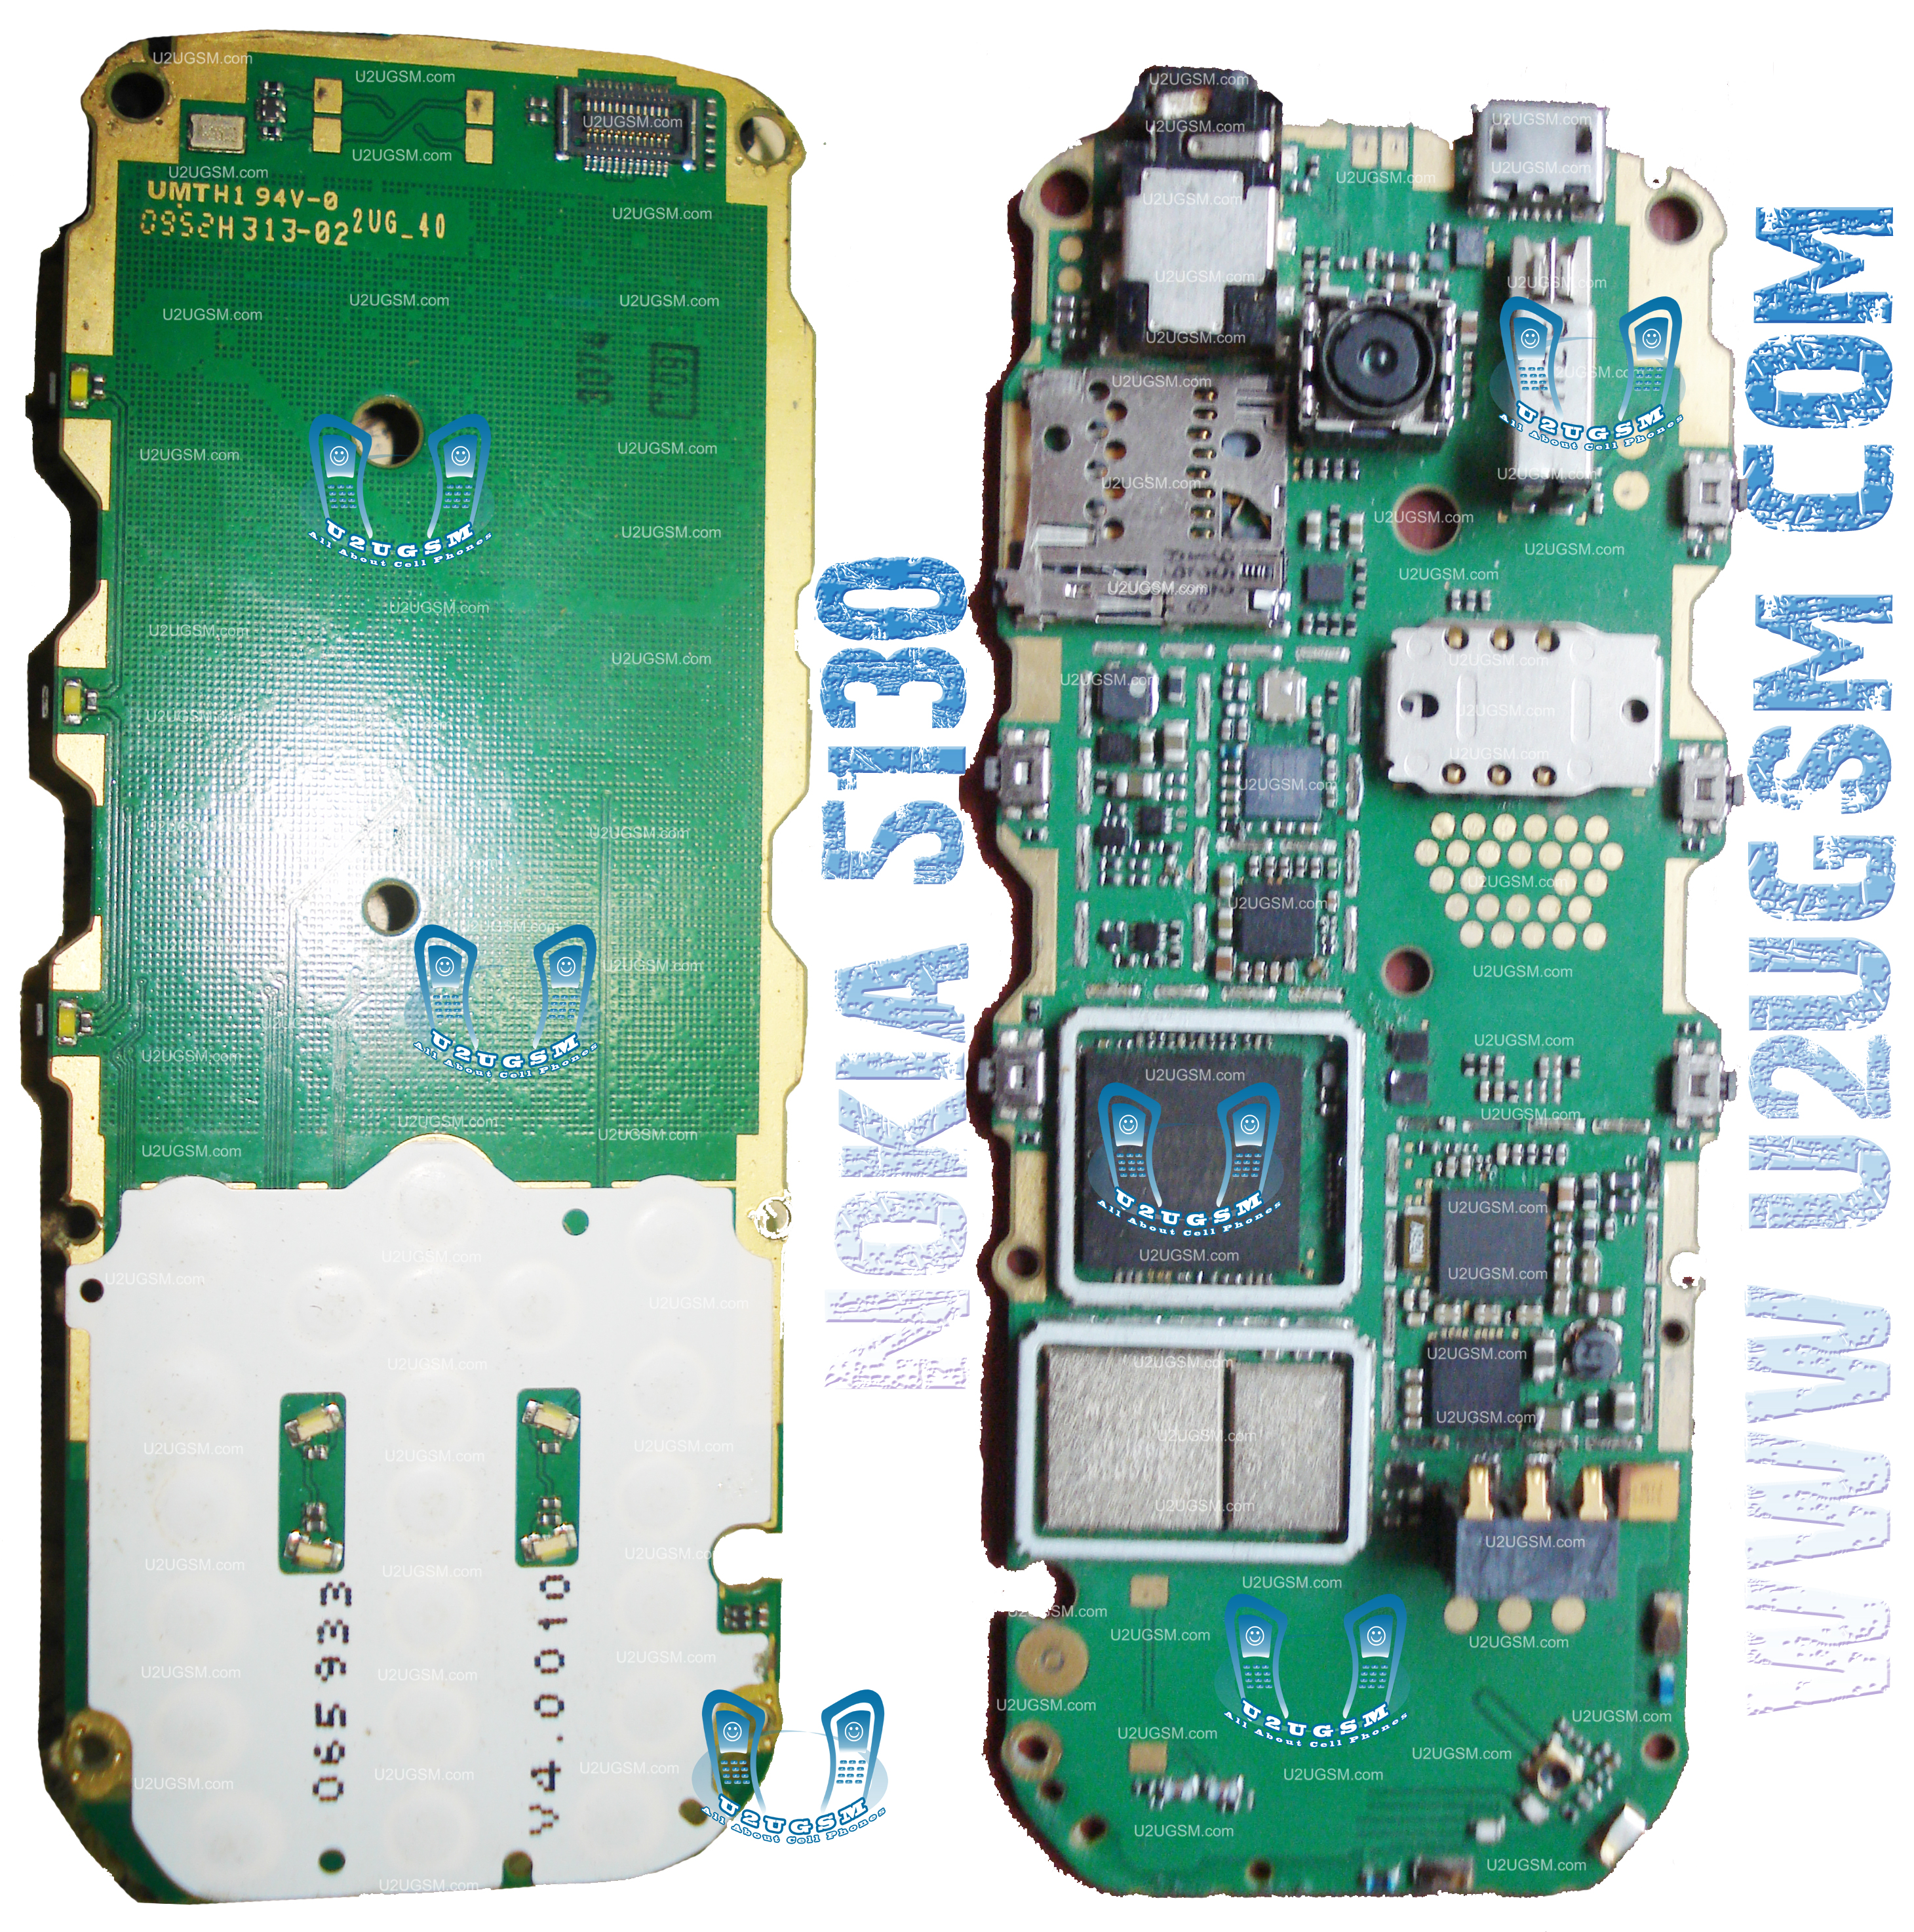 Tracking Nokia Cell Phone Schematic Diagram